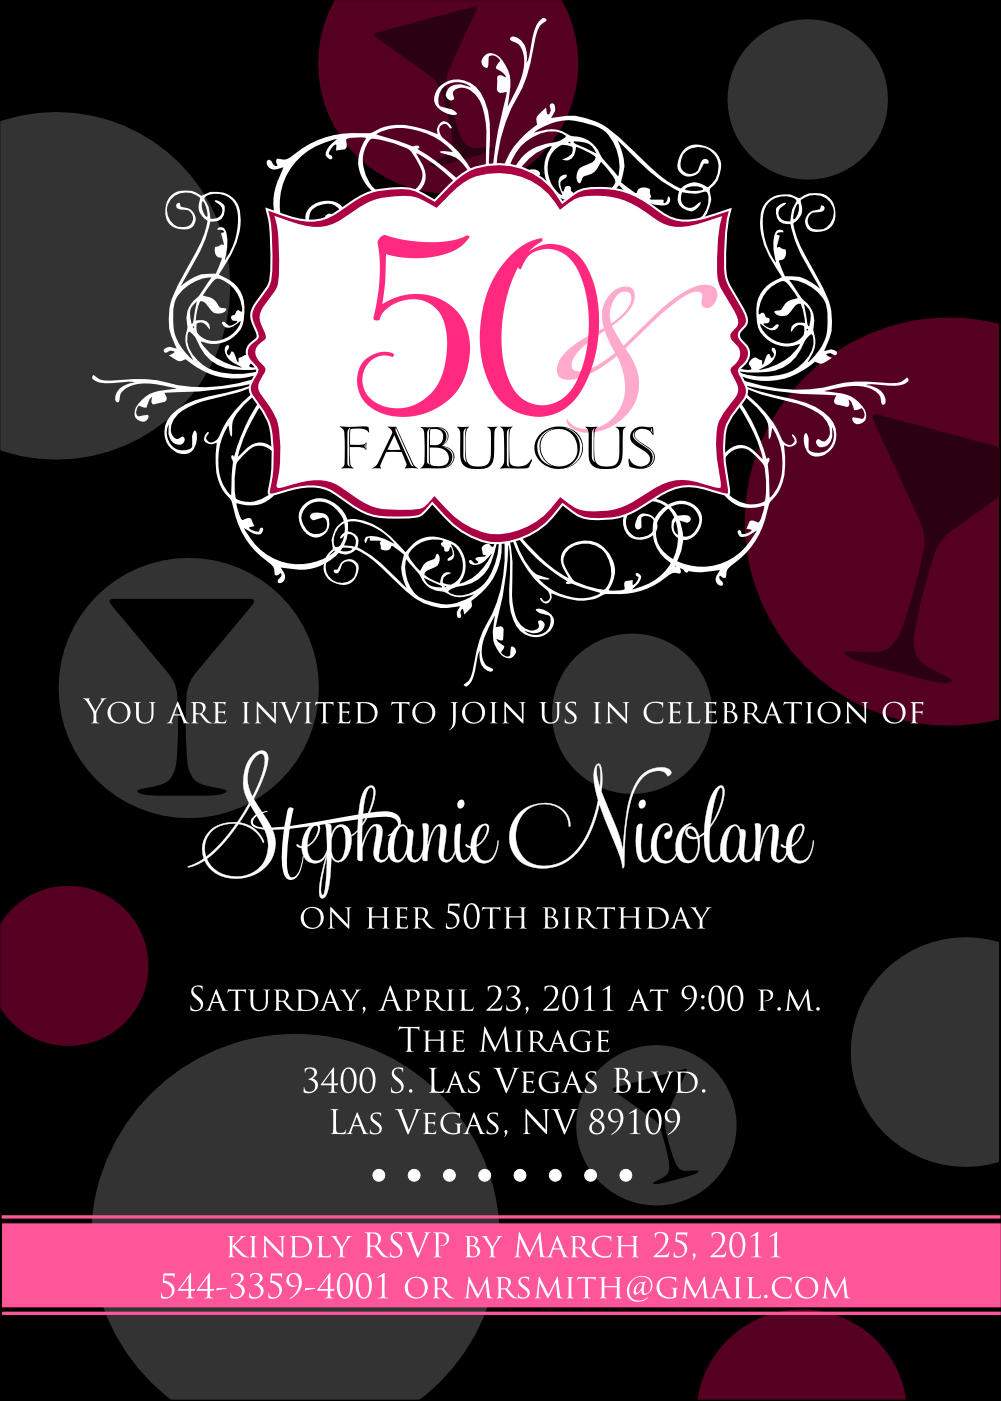 50th Birthday Beach Party Invitations – 50th Birthday Party Invite